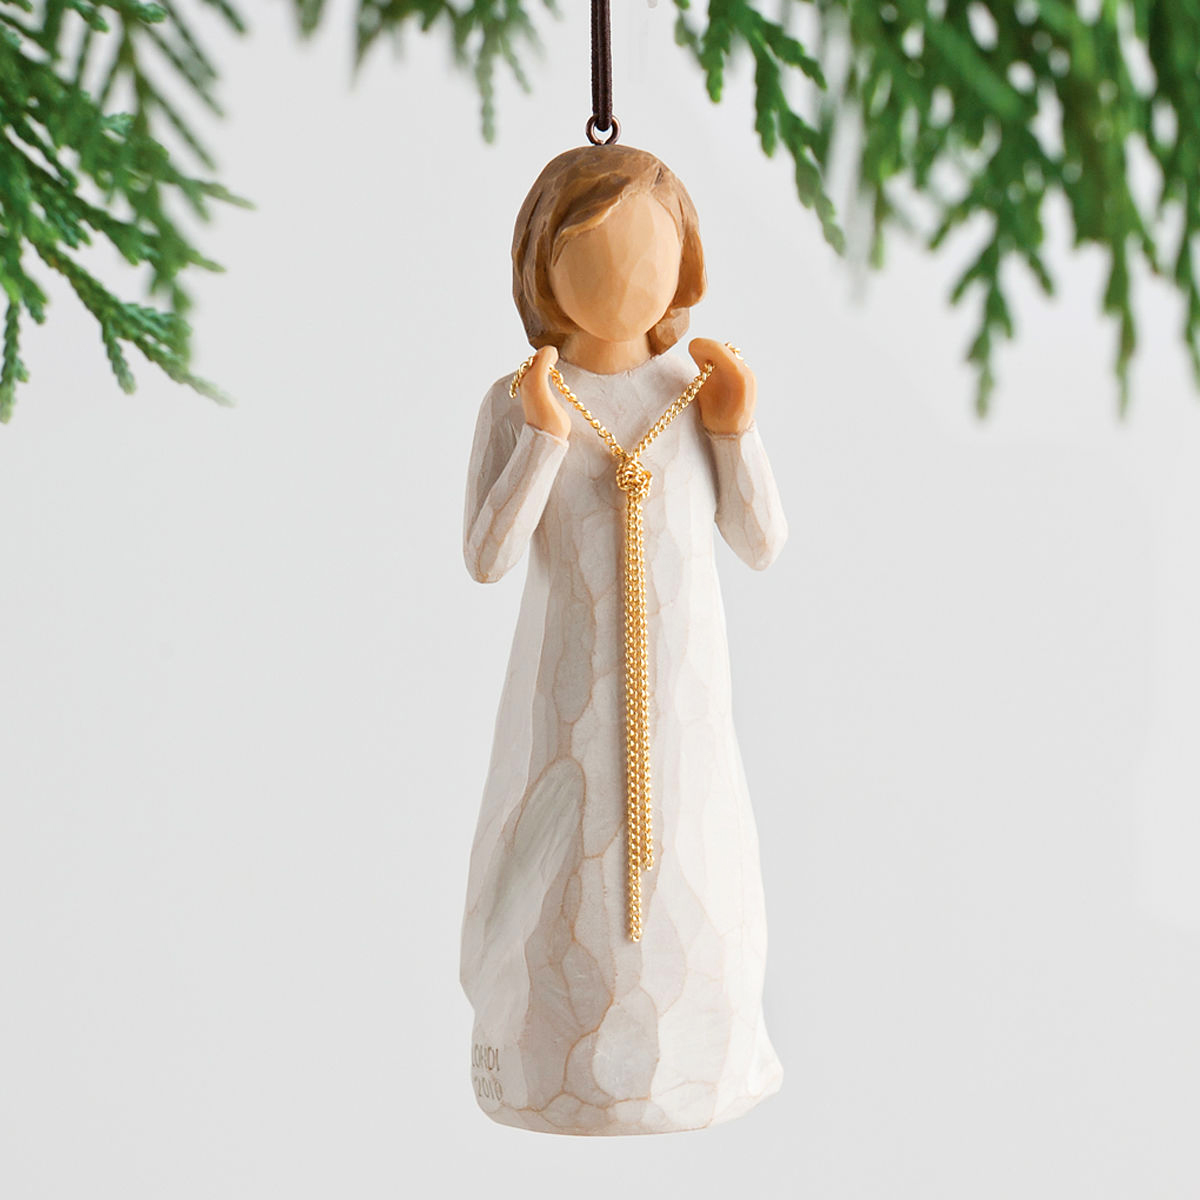 Boy Angel Christmas Ornaments